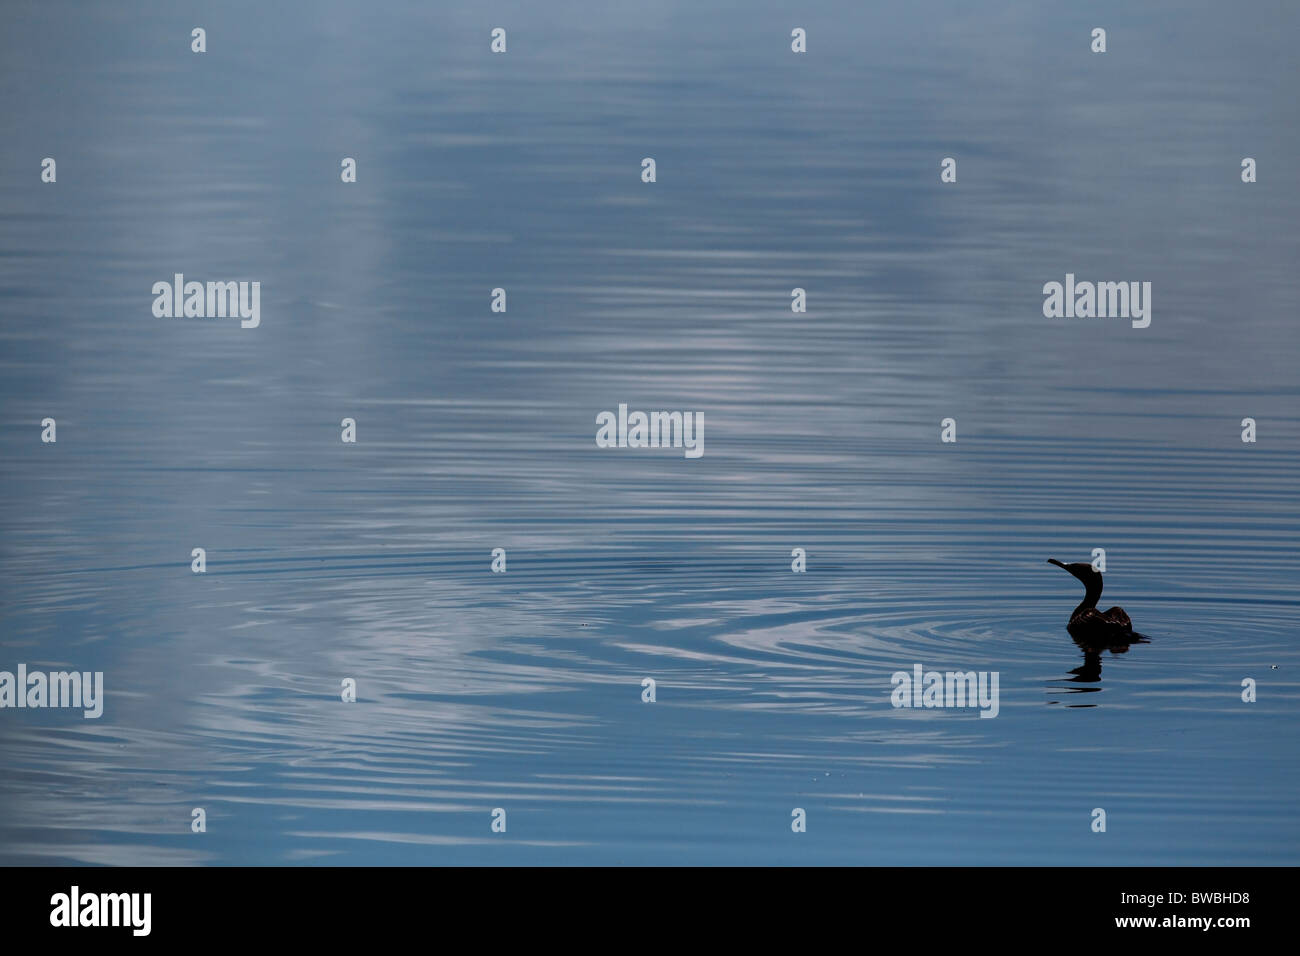 Great Cormorant on Lake Nakuru, Kenya. - Stock Image